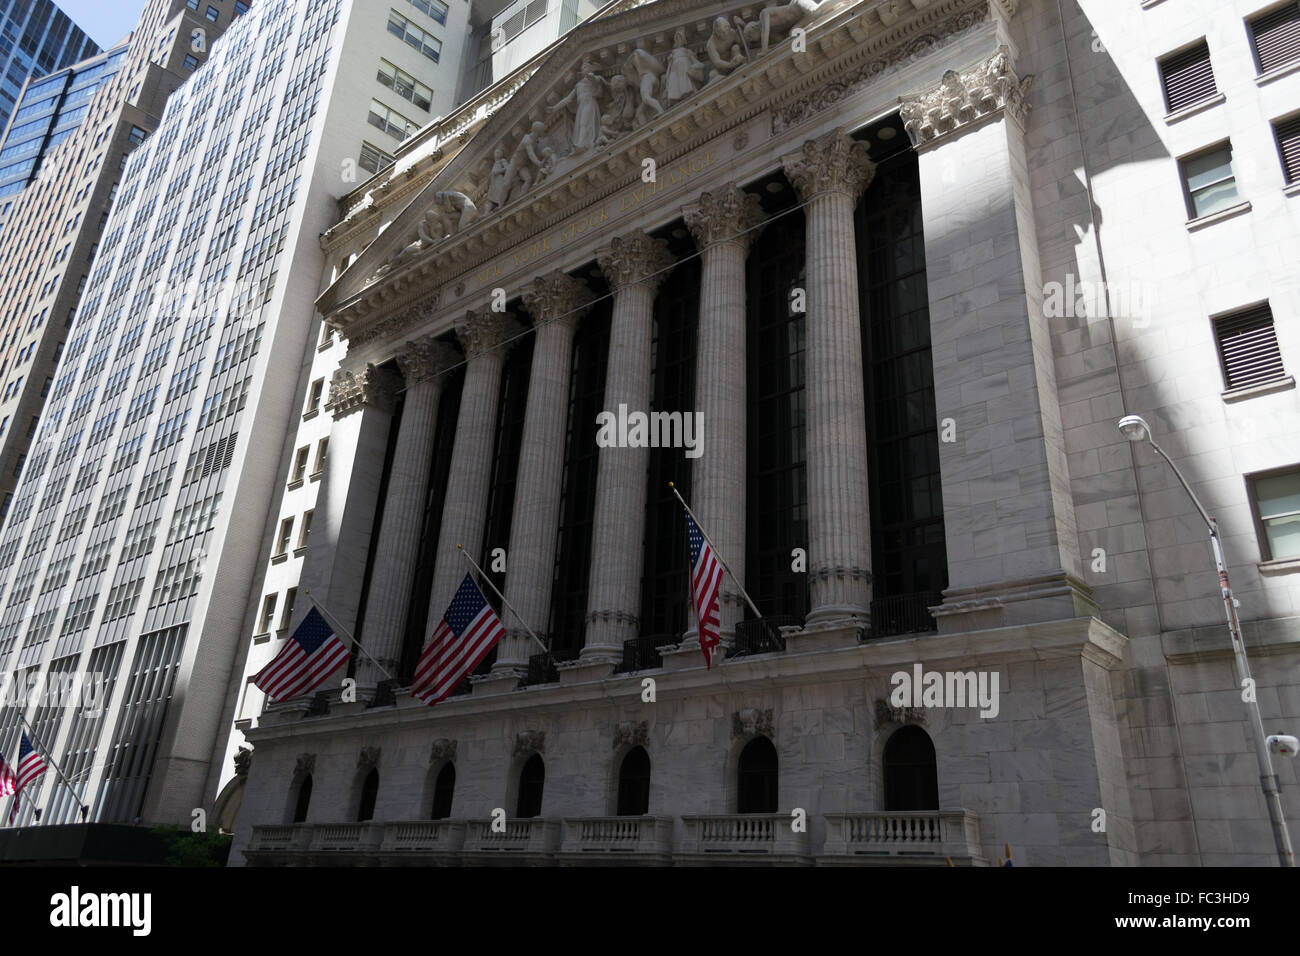 Flags at the stock exchange building - Stock Image